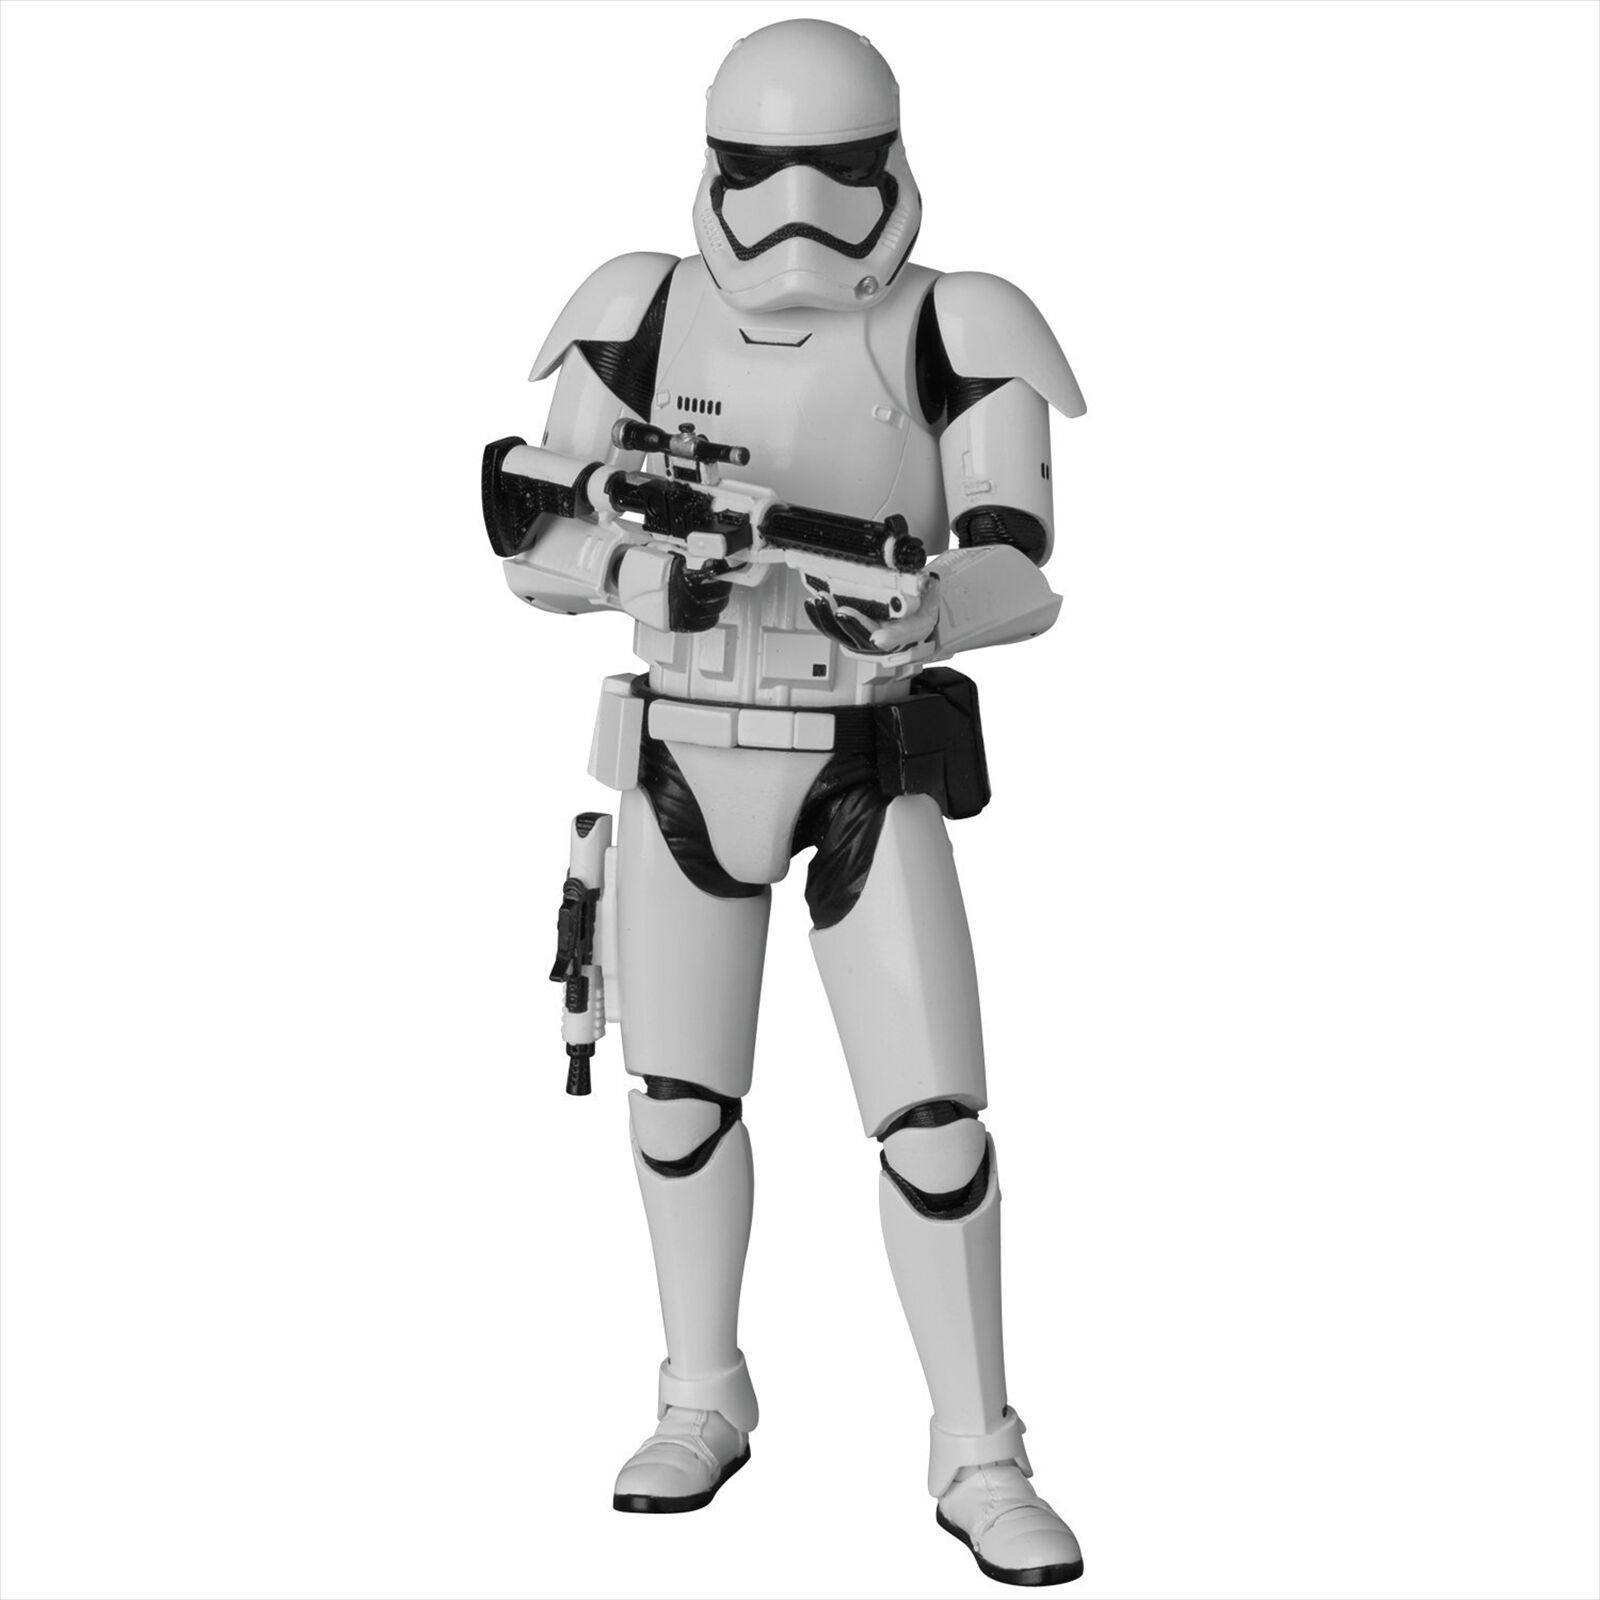 Medicom Toy MAFEX No.021 First Order Stormtrooper Star Wars The Force Awakens